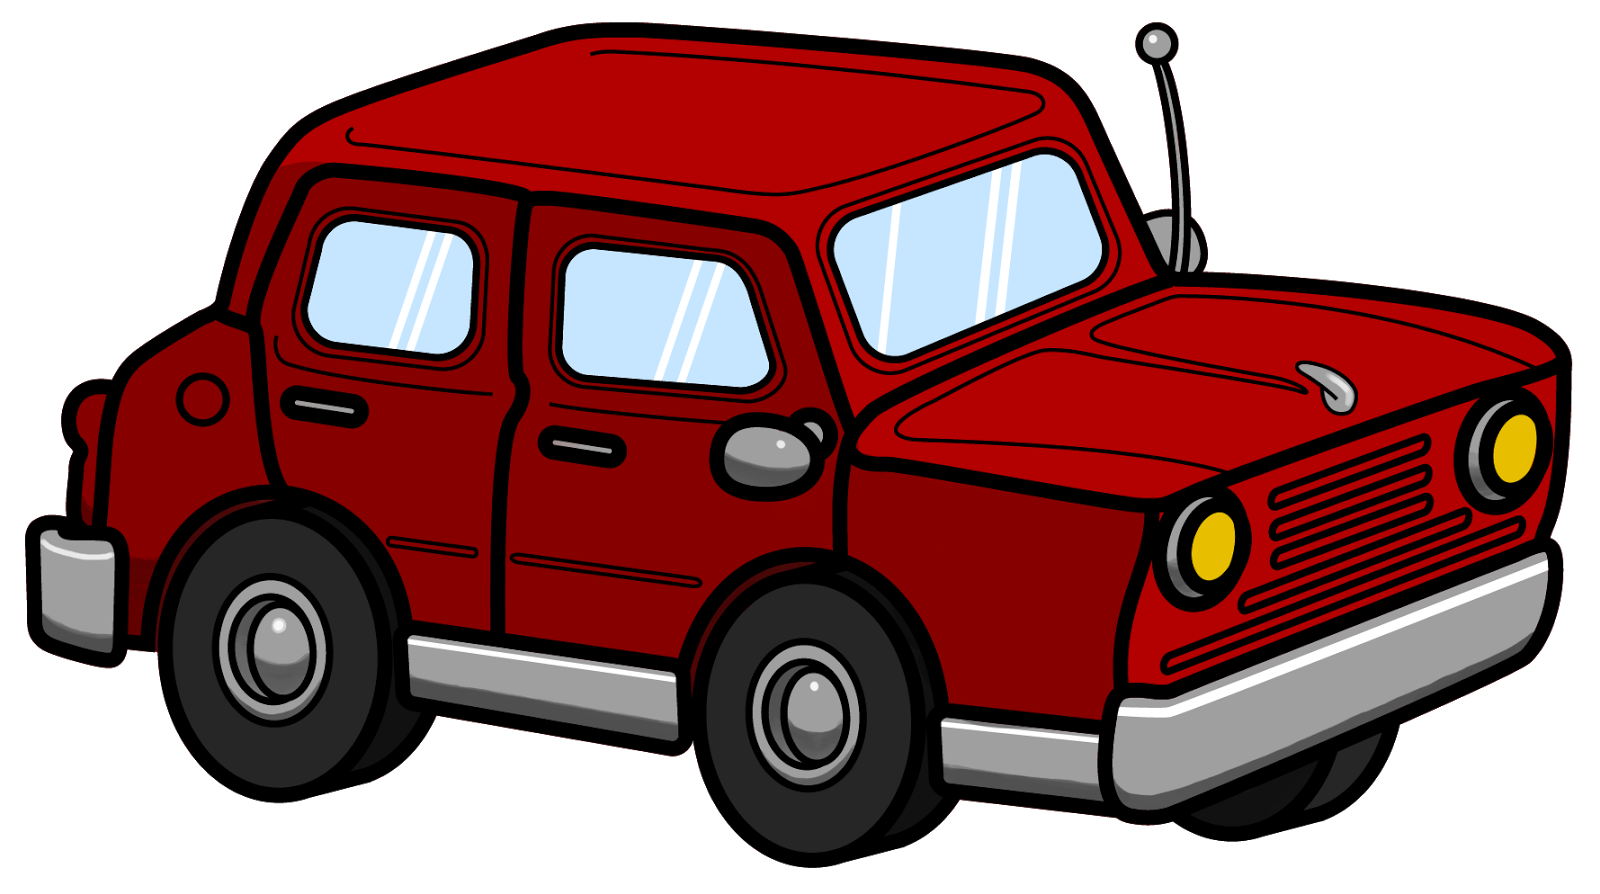 Camping car clipart svg black and white Car vector PNG Clipart - Download free Car images in PNG - Part 4 svg black and white